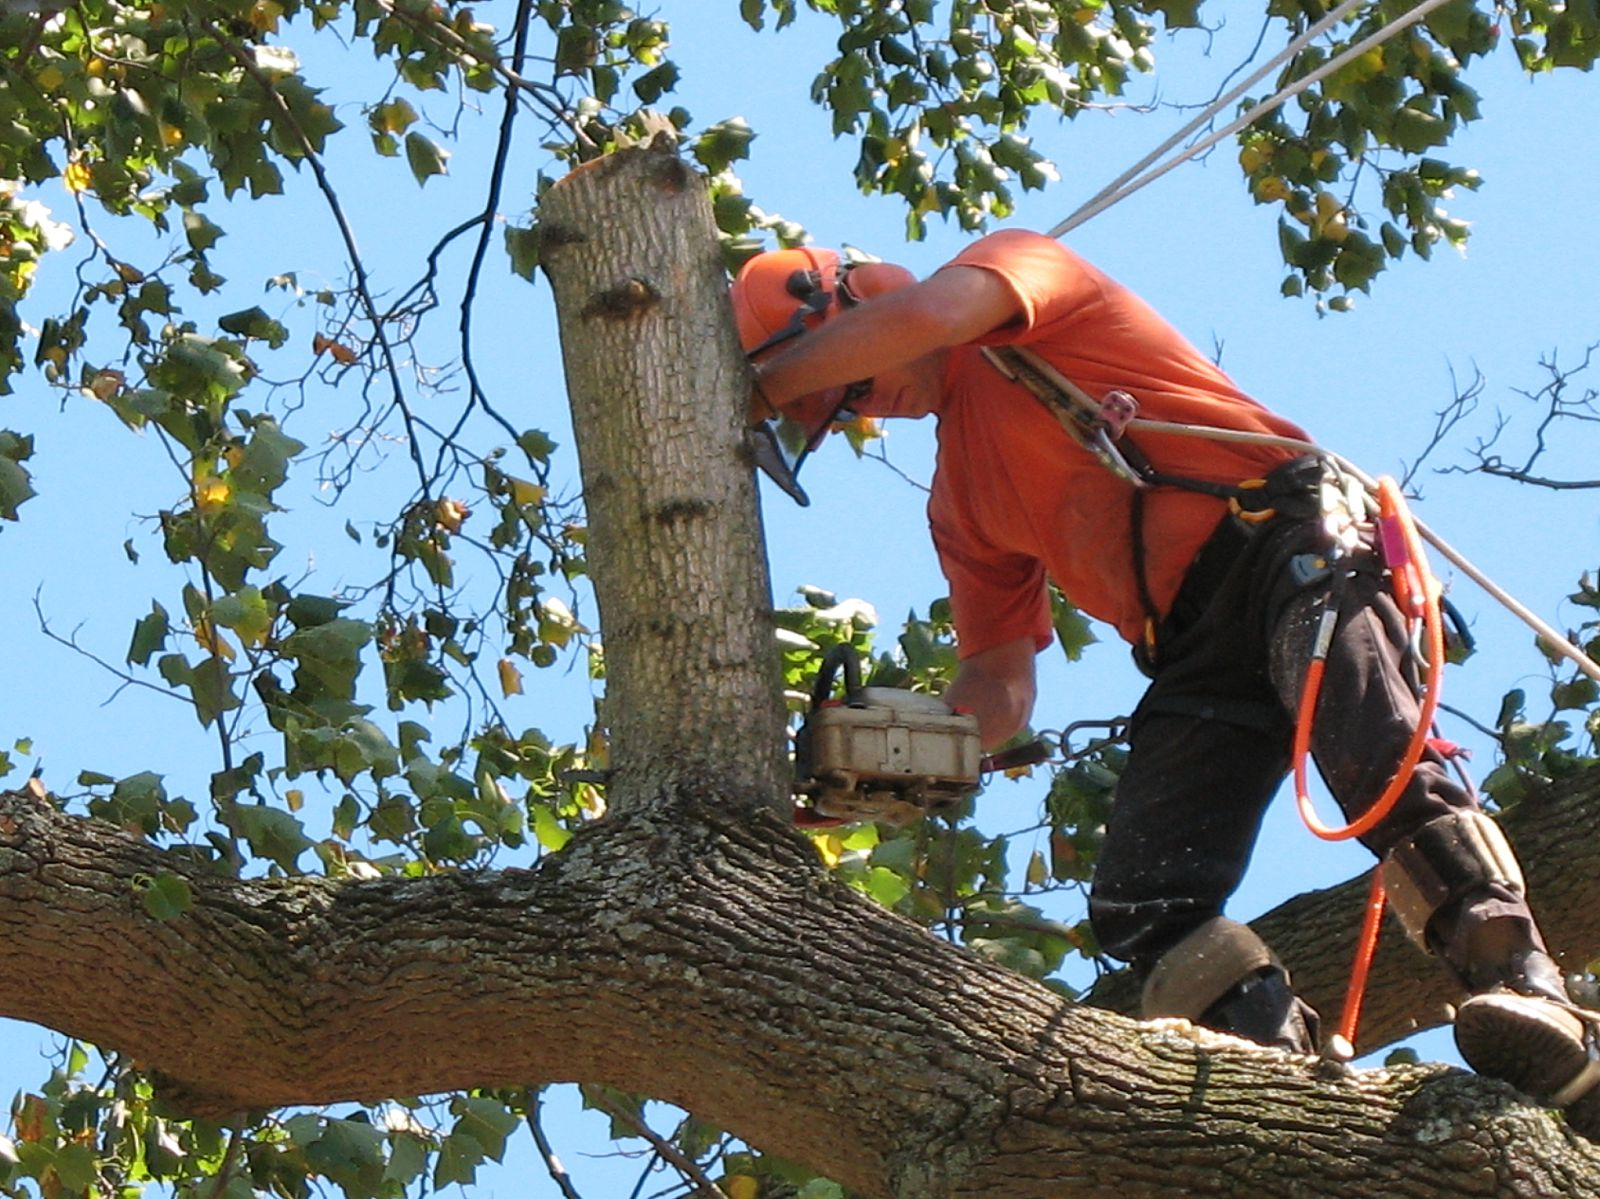 tree service in new york tree removal tree trimming stump grinding. Black Bedroom Furniture Sets. Home Design Ideas